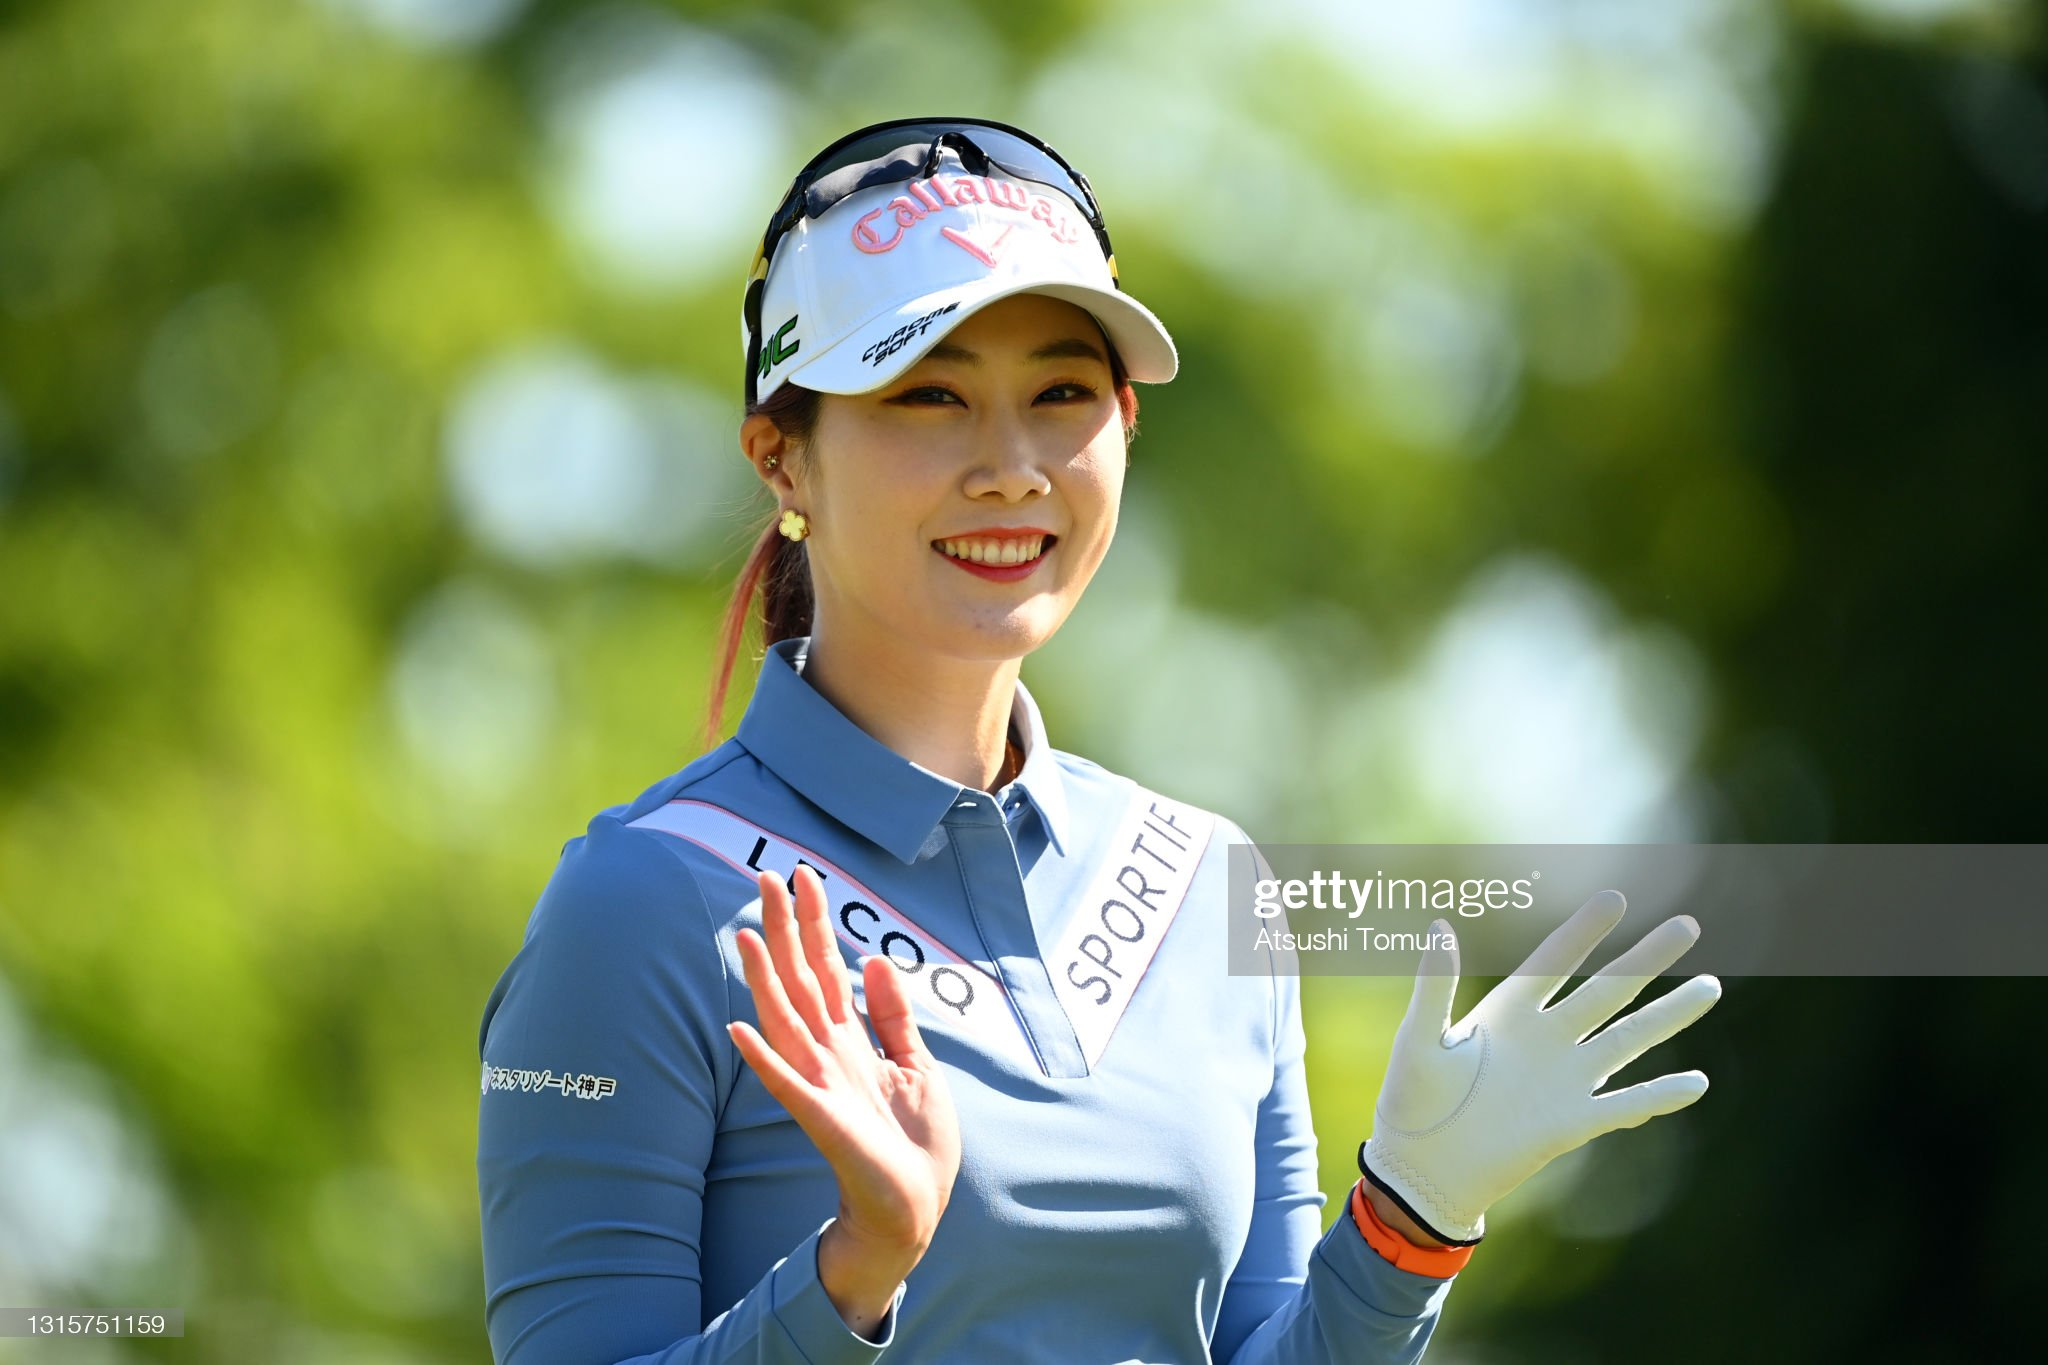 https://media.gettyimages.com/photos/haneul-kim-of-south-korea-waves-on-the-1st-hole-during-the-final-of-picture-id1315751159?s=2048x2048